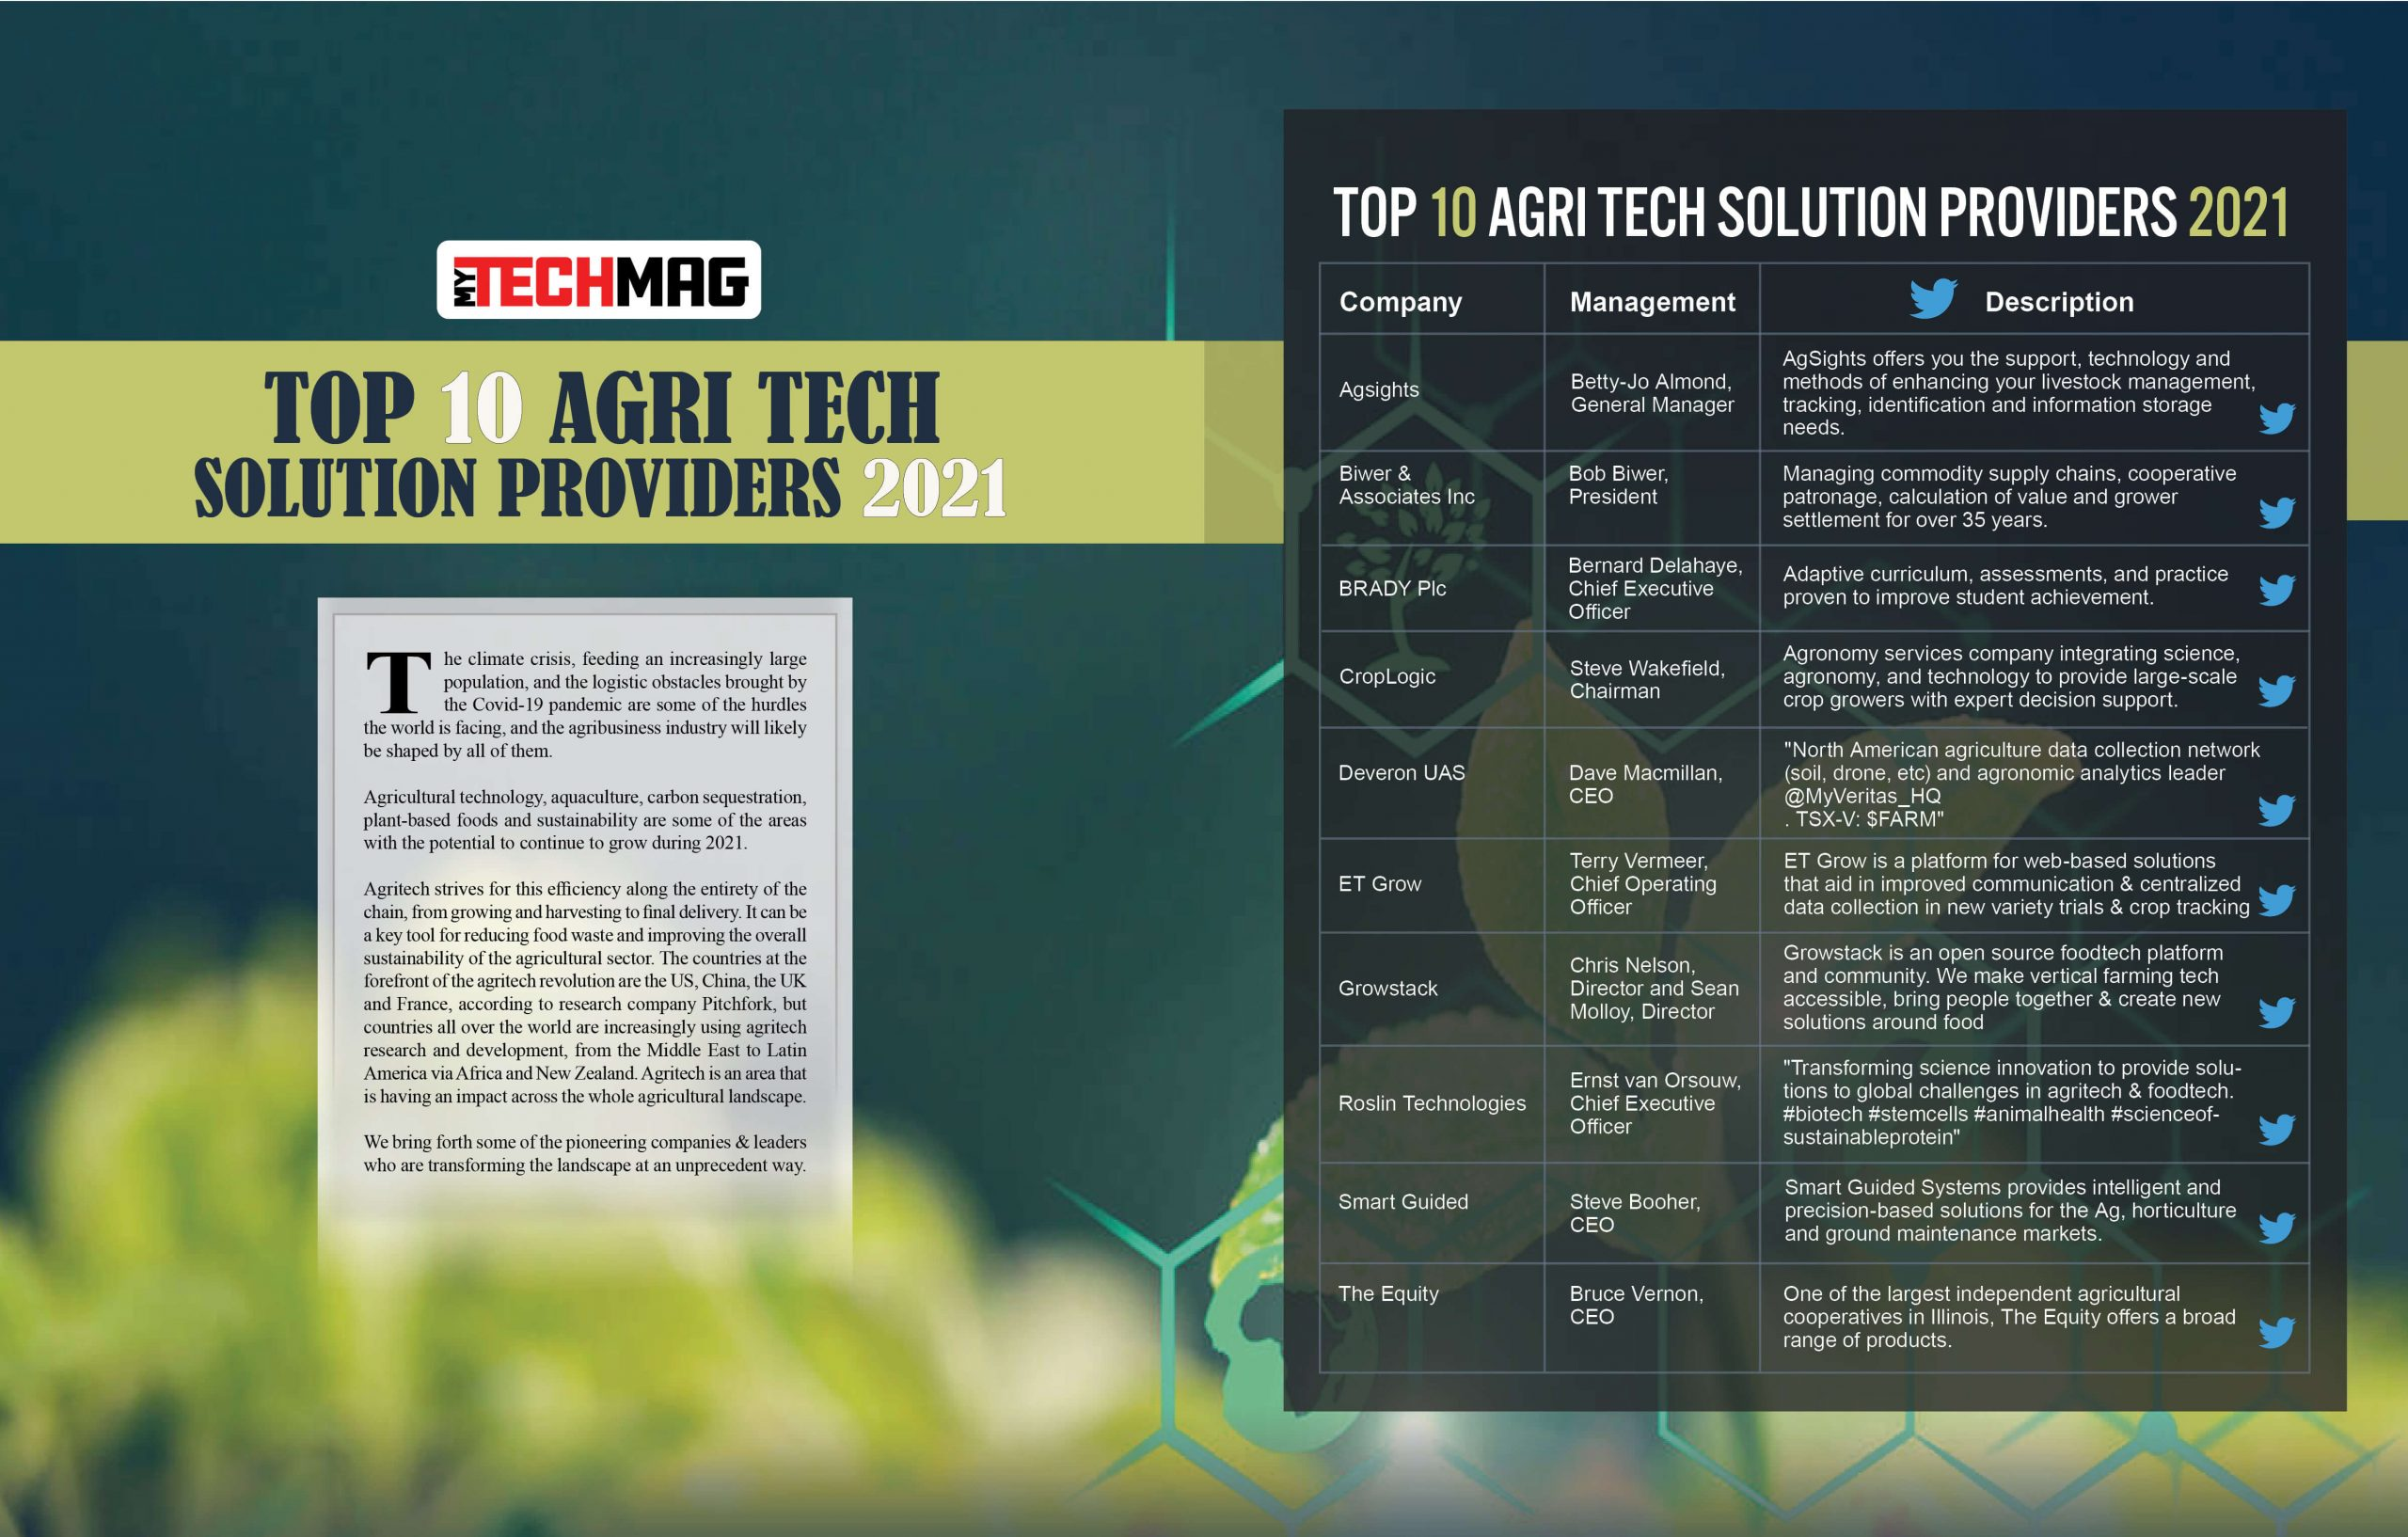 Top 10 AgriTech Solution Providers 2021